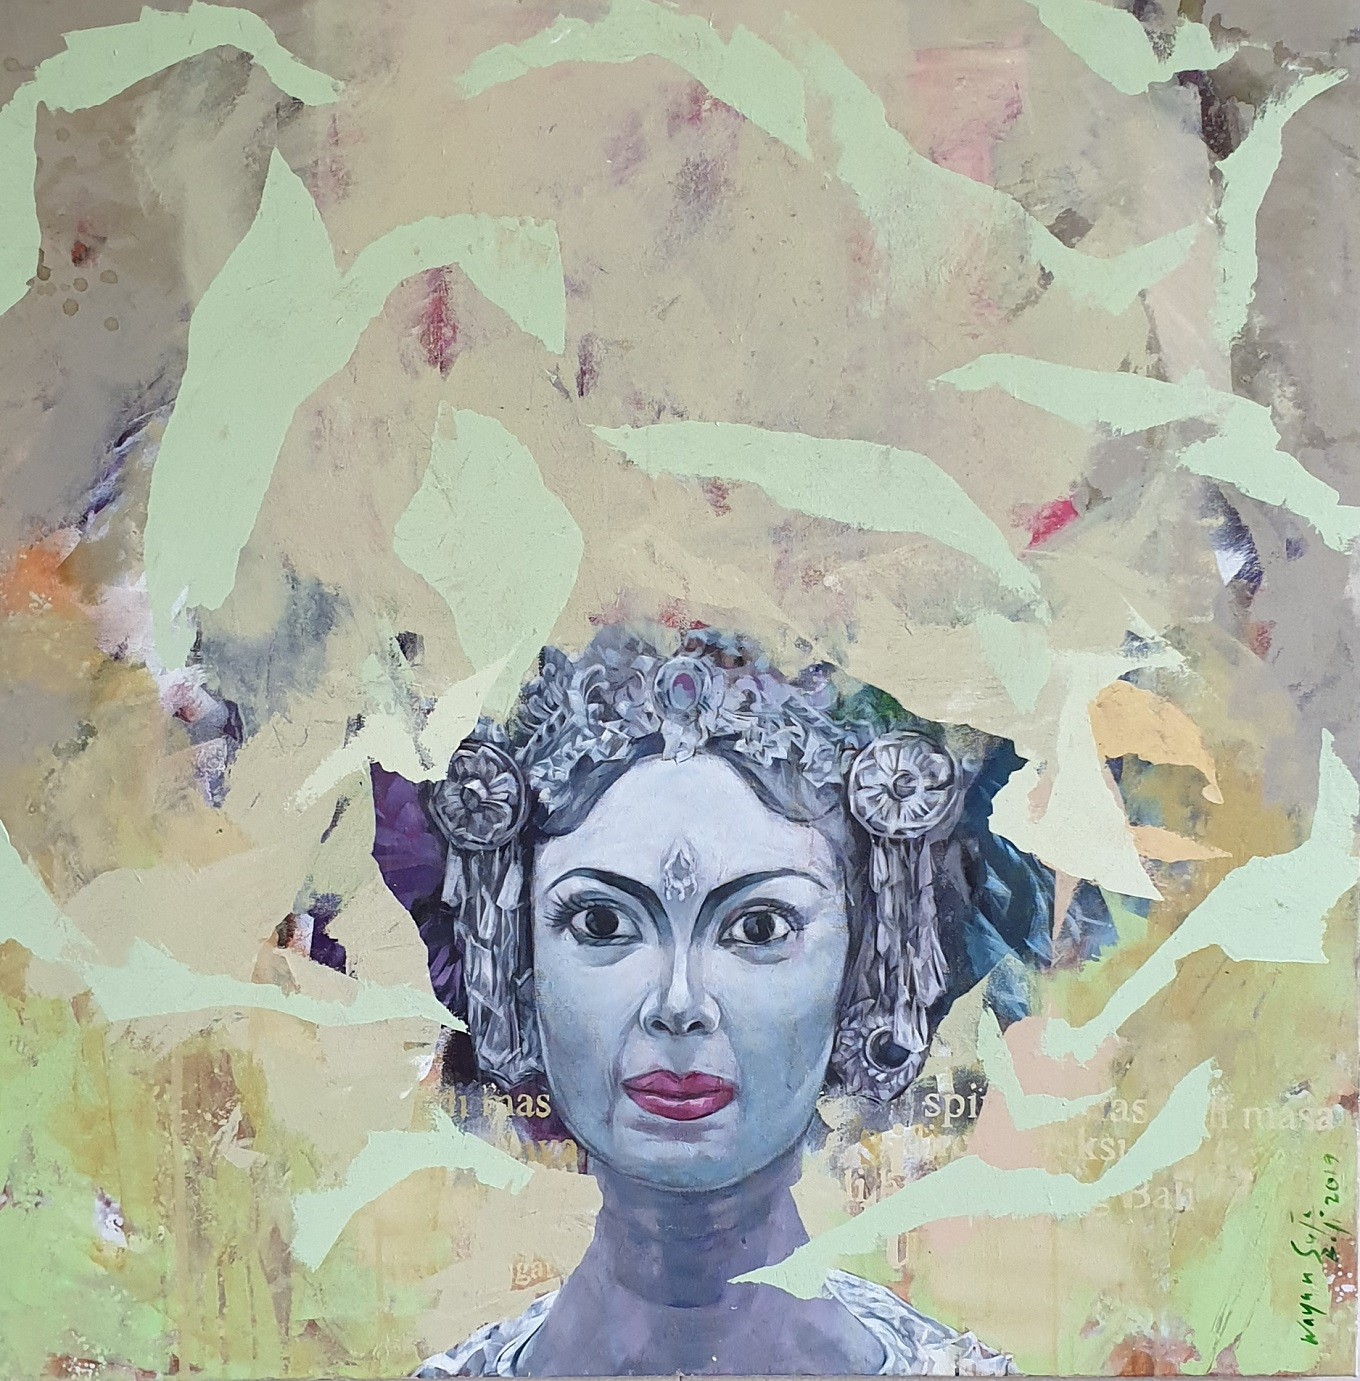 'Balinese Woman's Countenance', 2019 - Wayan Suja